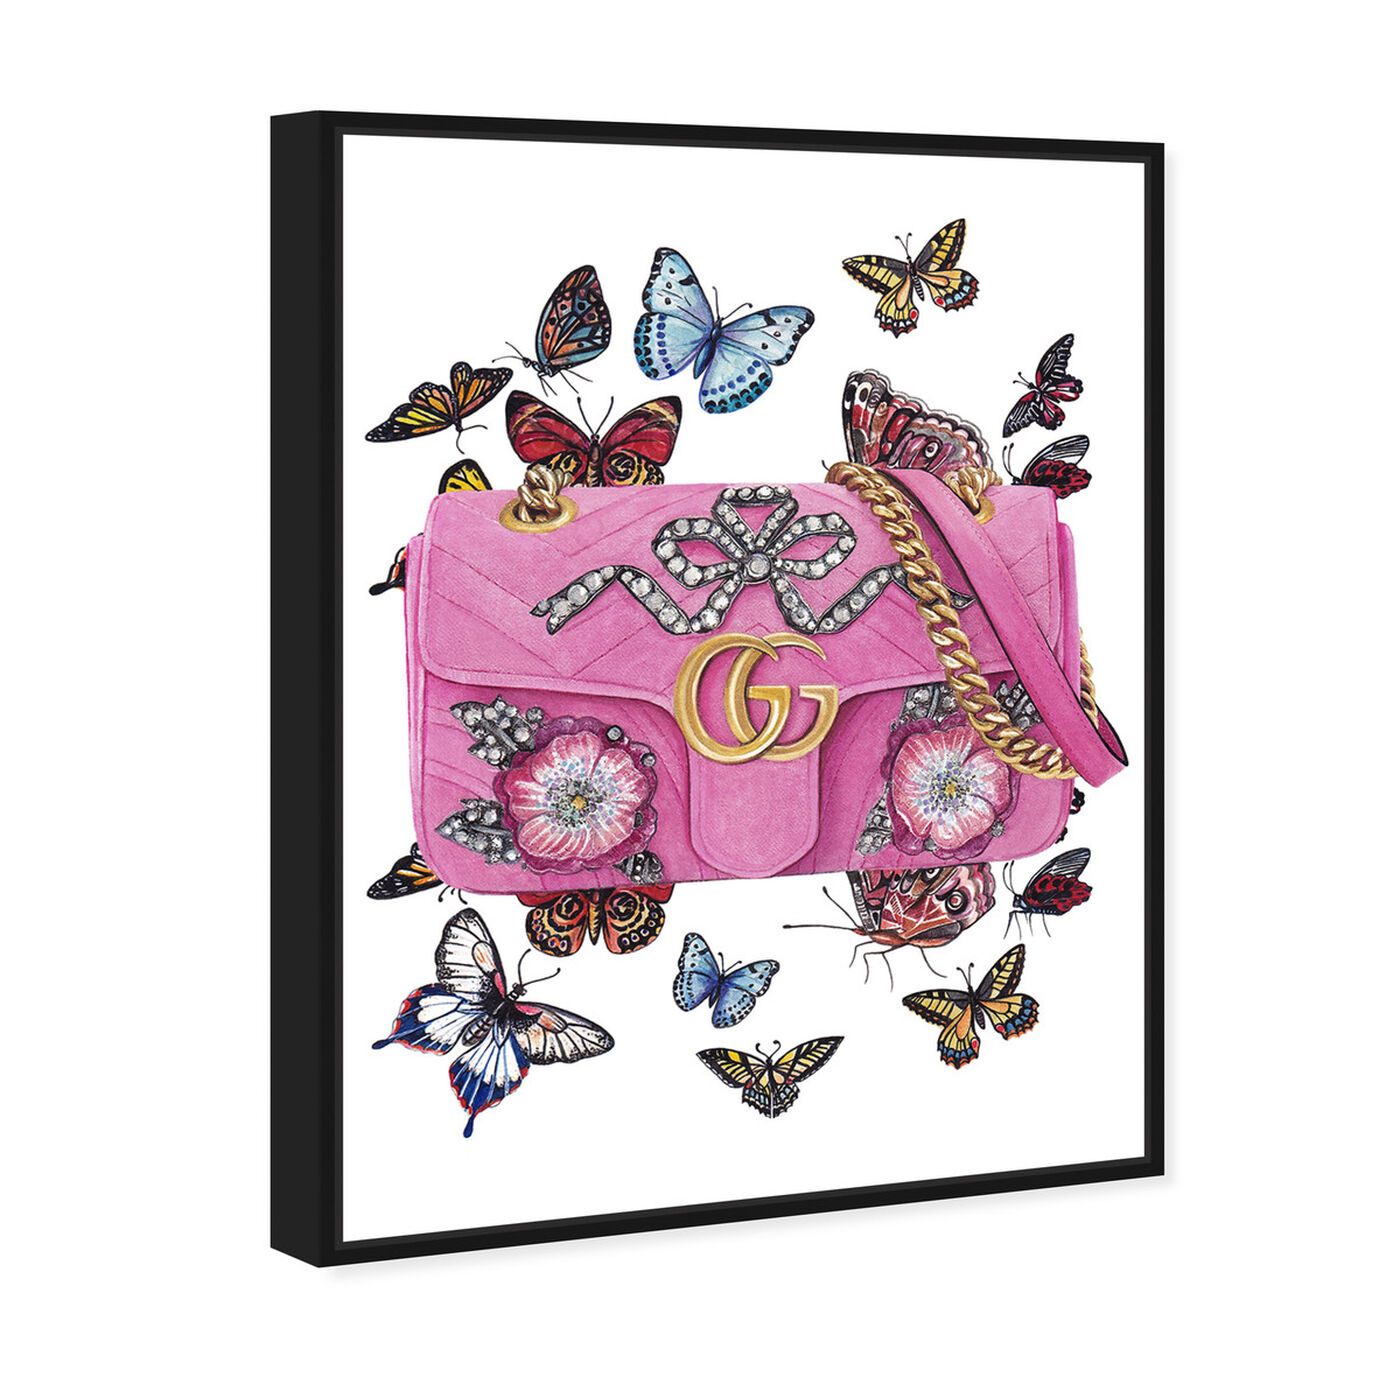 Angled view of Doll Memories - Butterflies featuring fashion and glam and handbags art.